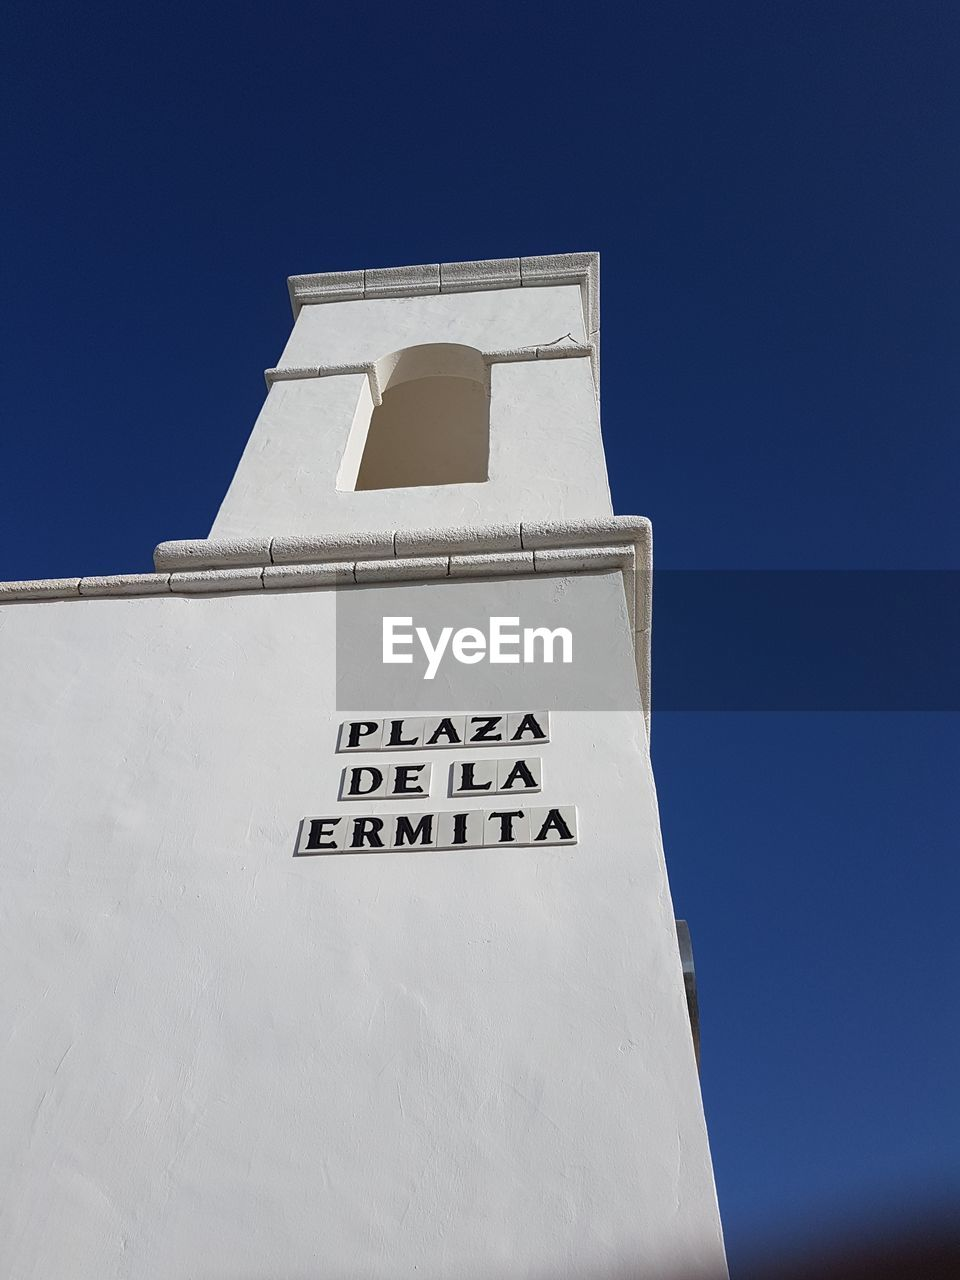 Low Angle View Of Text On Building Against Clear Blue Sky